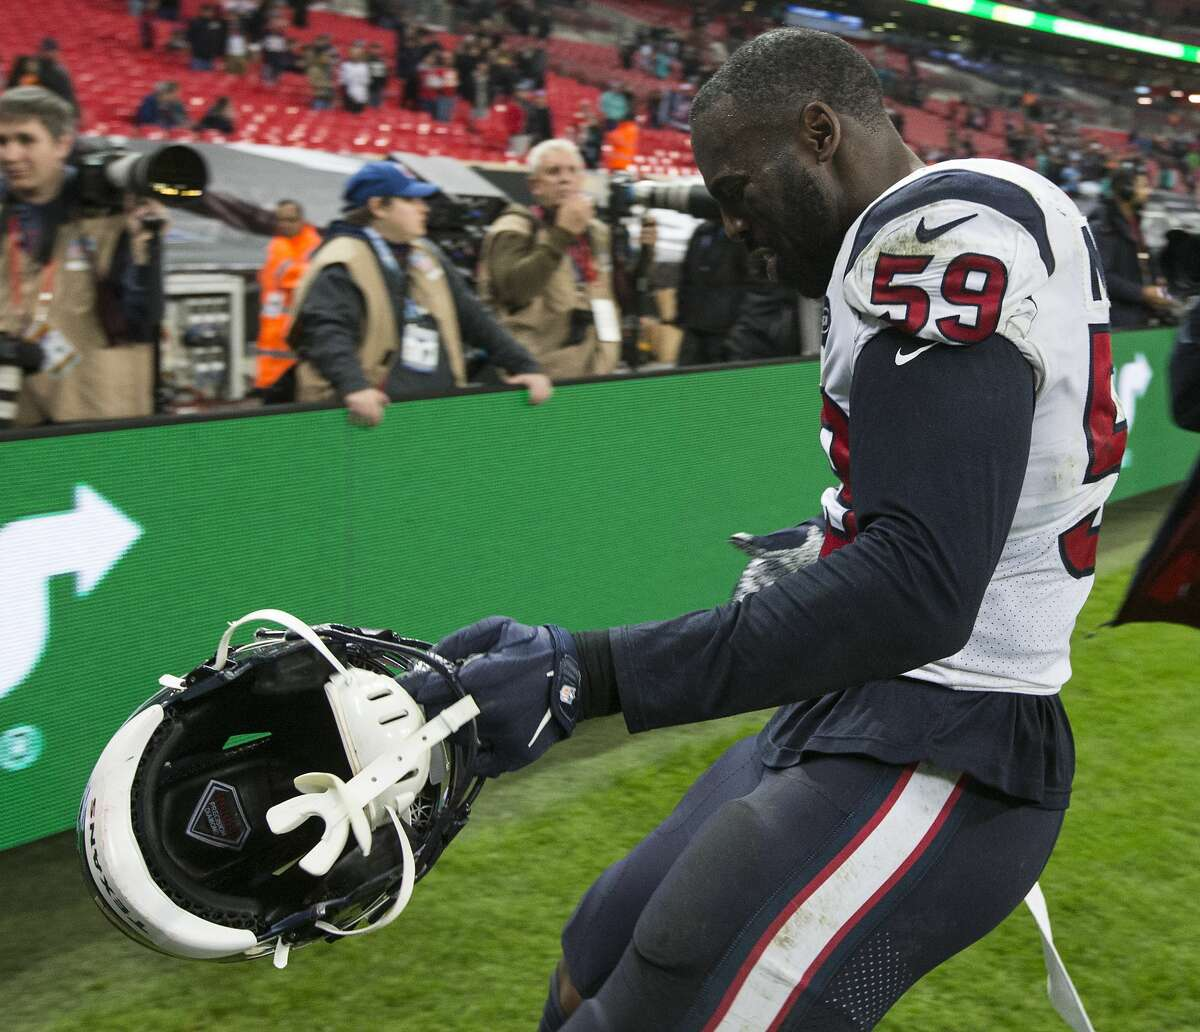 Houston Texans outside linebacker Whitney Mercilus celebrates the Texans 26-3 win over the Jacksonville Jaguars at Wembley Stadium on Sunday, Nov. 3, 2019, in London.